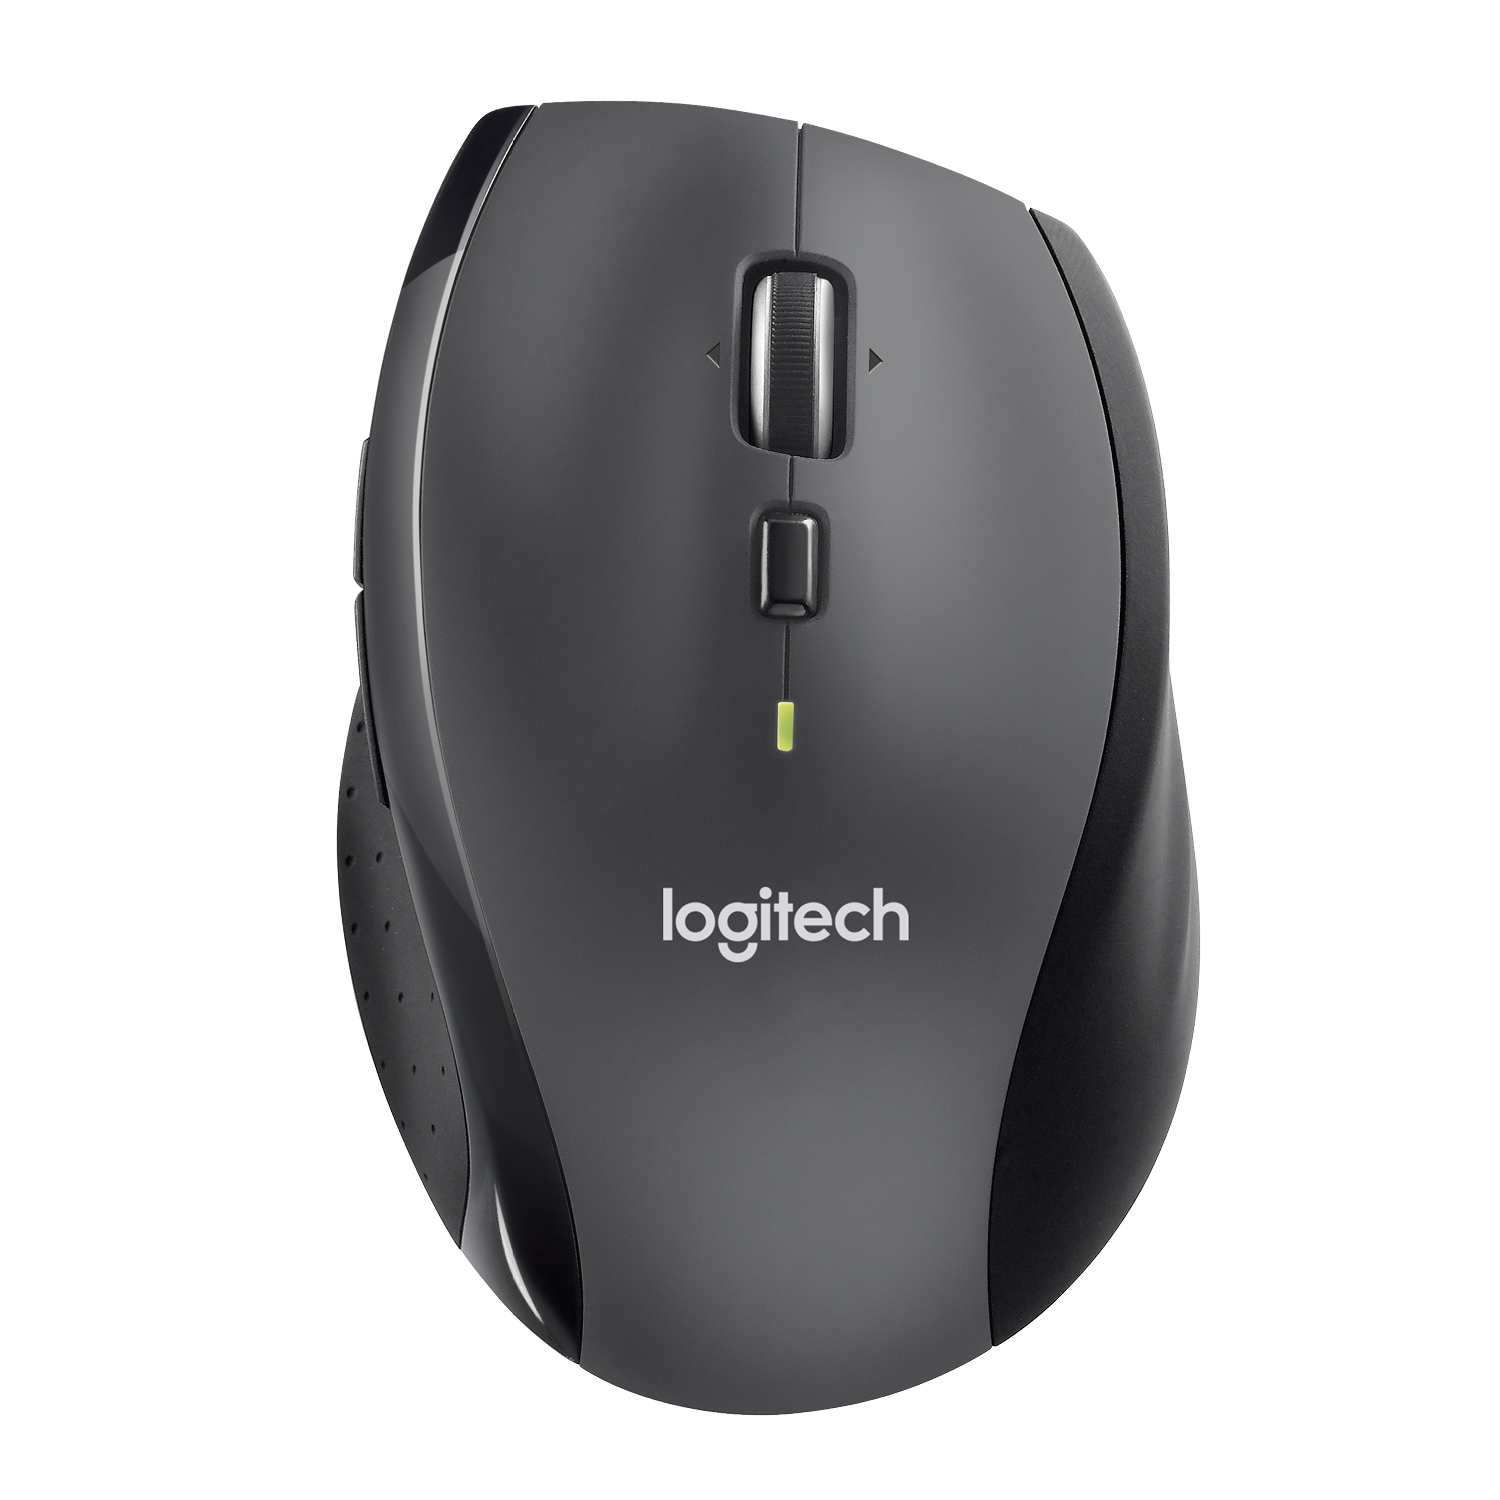 910-001949 Logitech M705 Black Mouse Wireless Factory Sealed